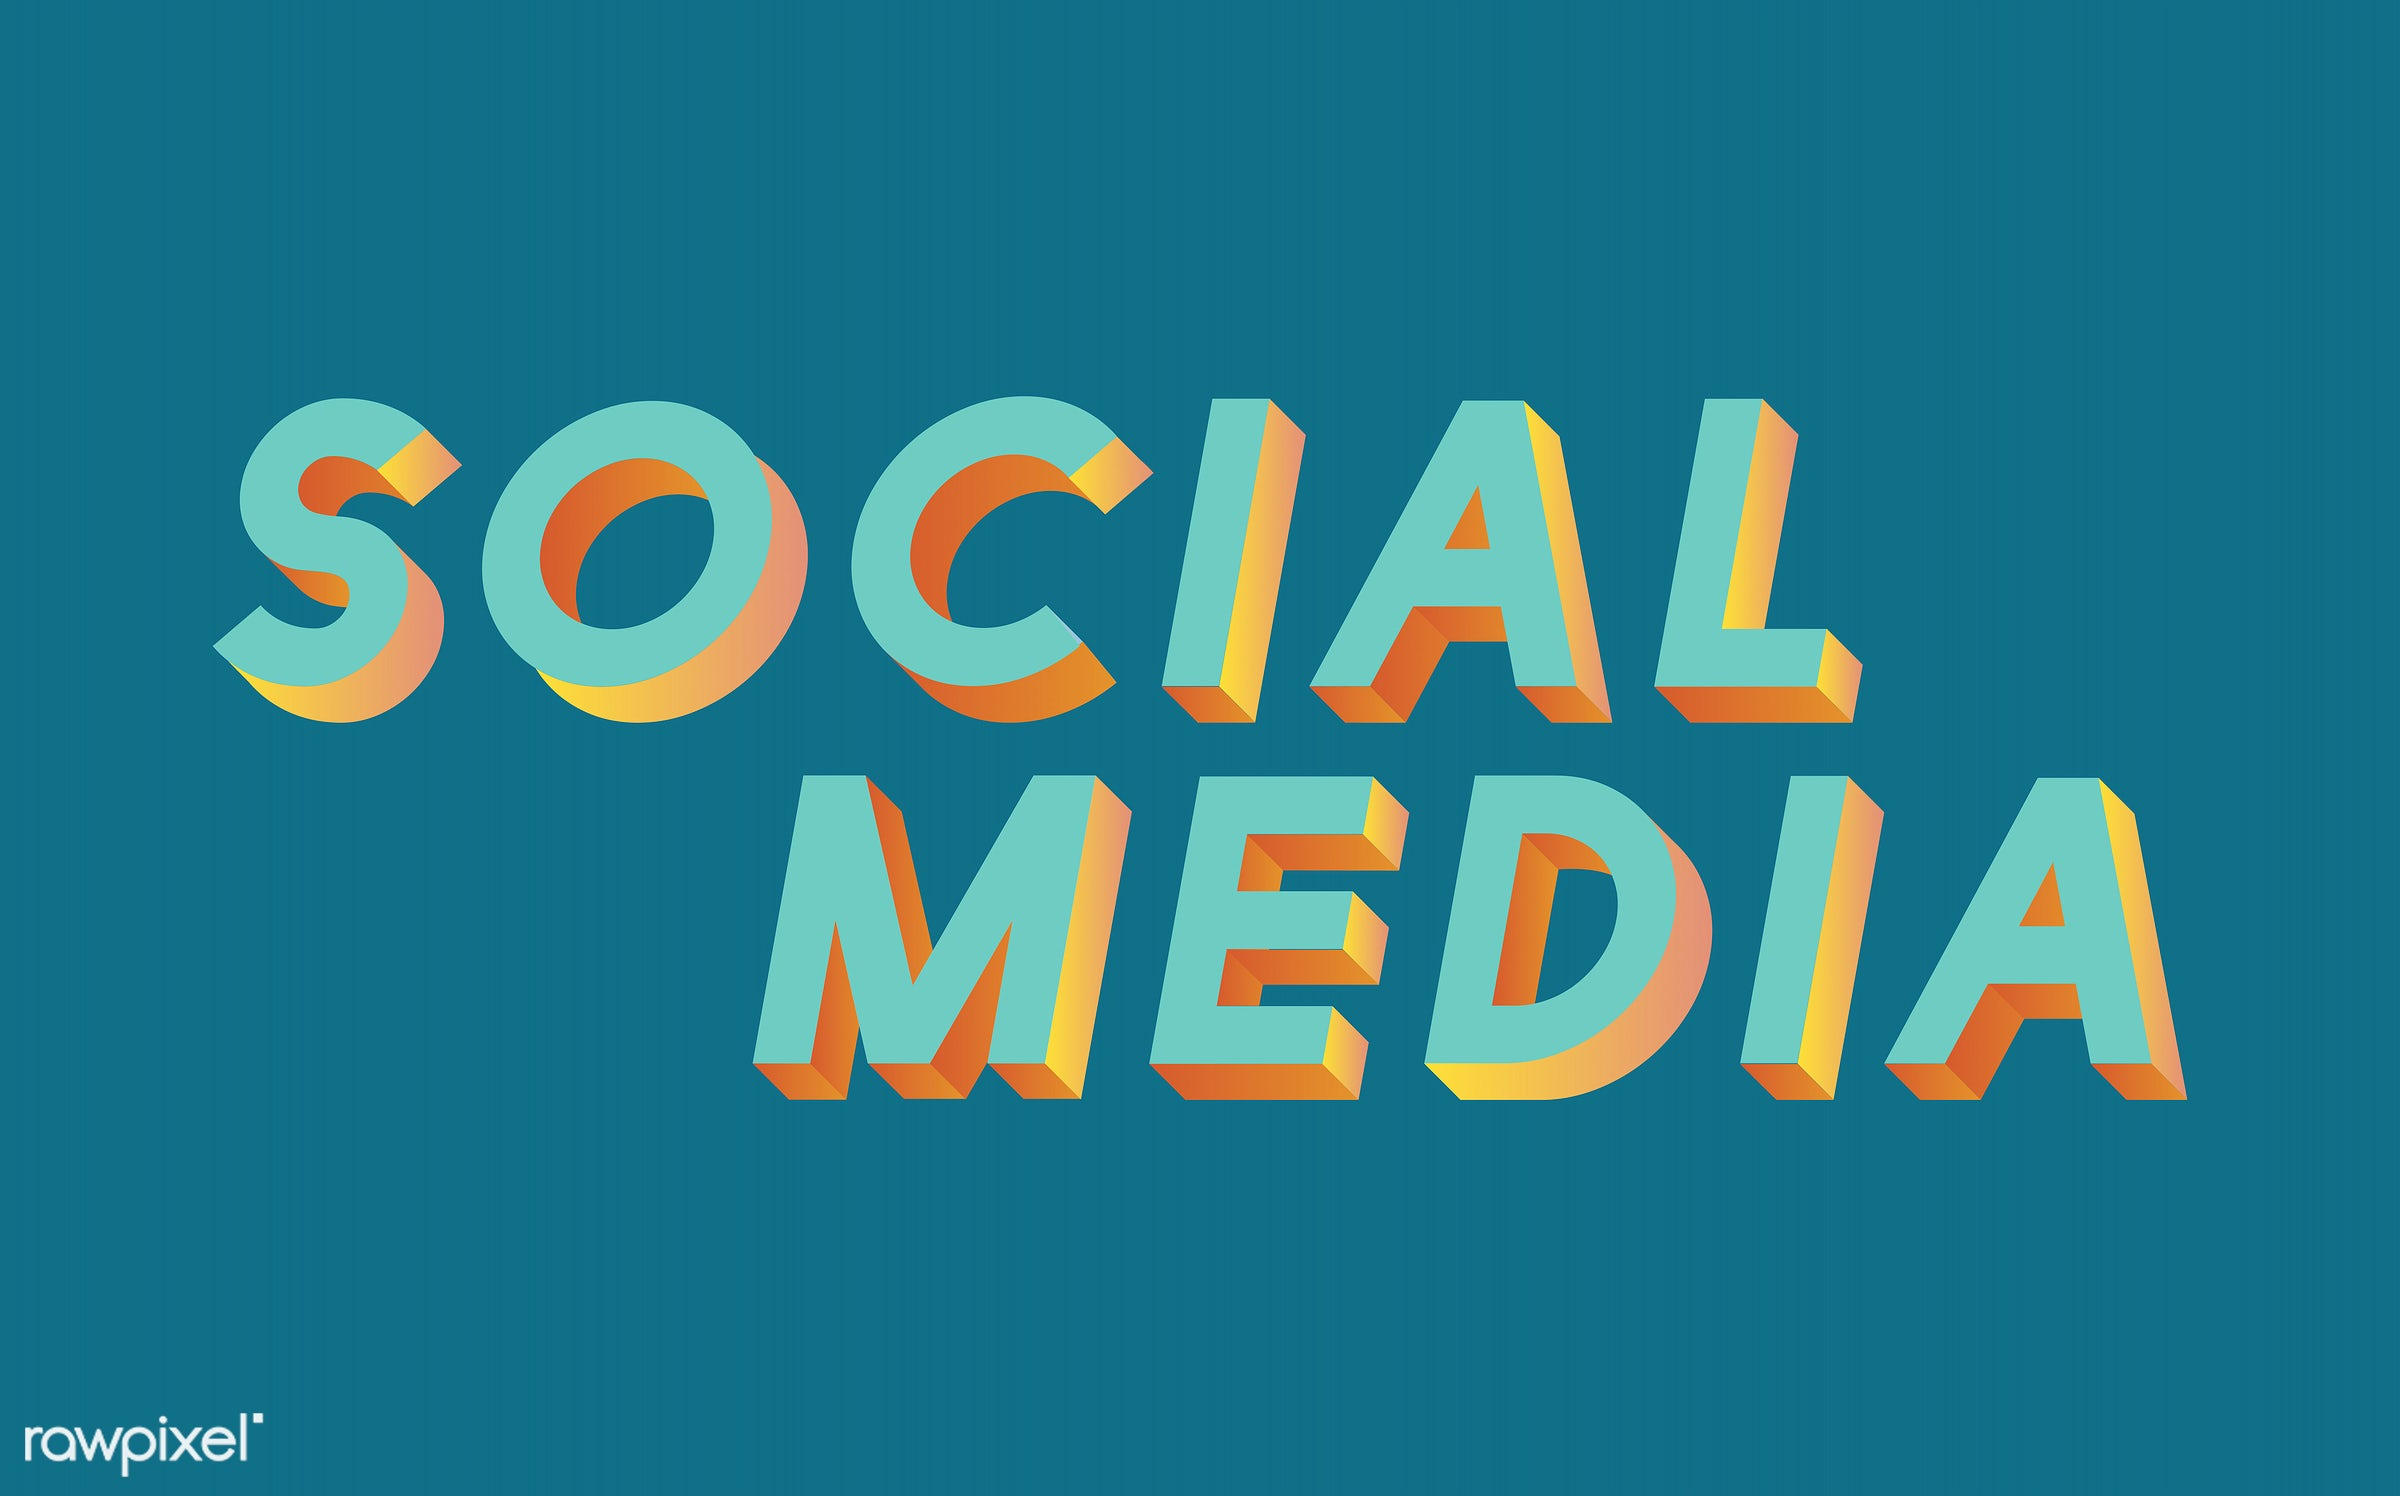 neon, colorful, 3d, three dimensional, vector, illustration, graphic, word, green, social networking, digital